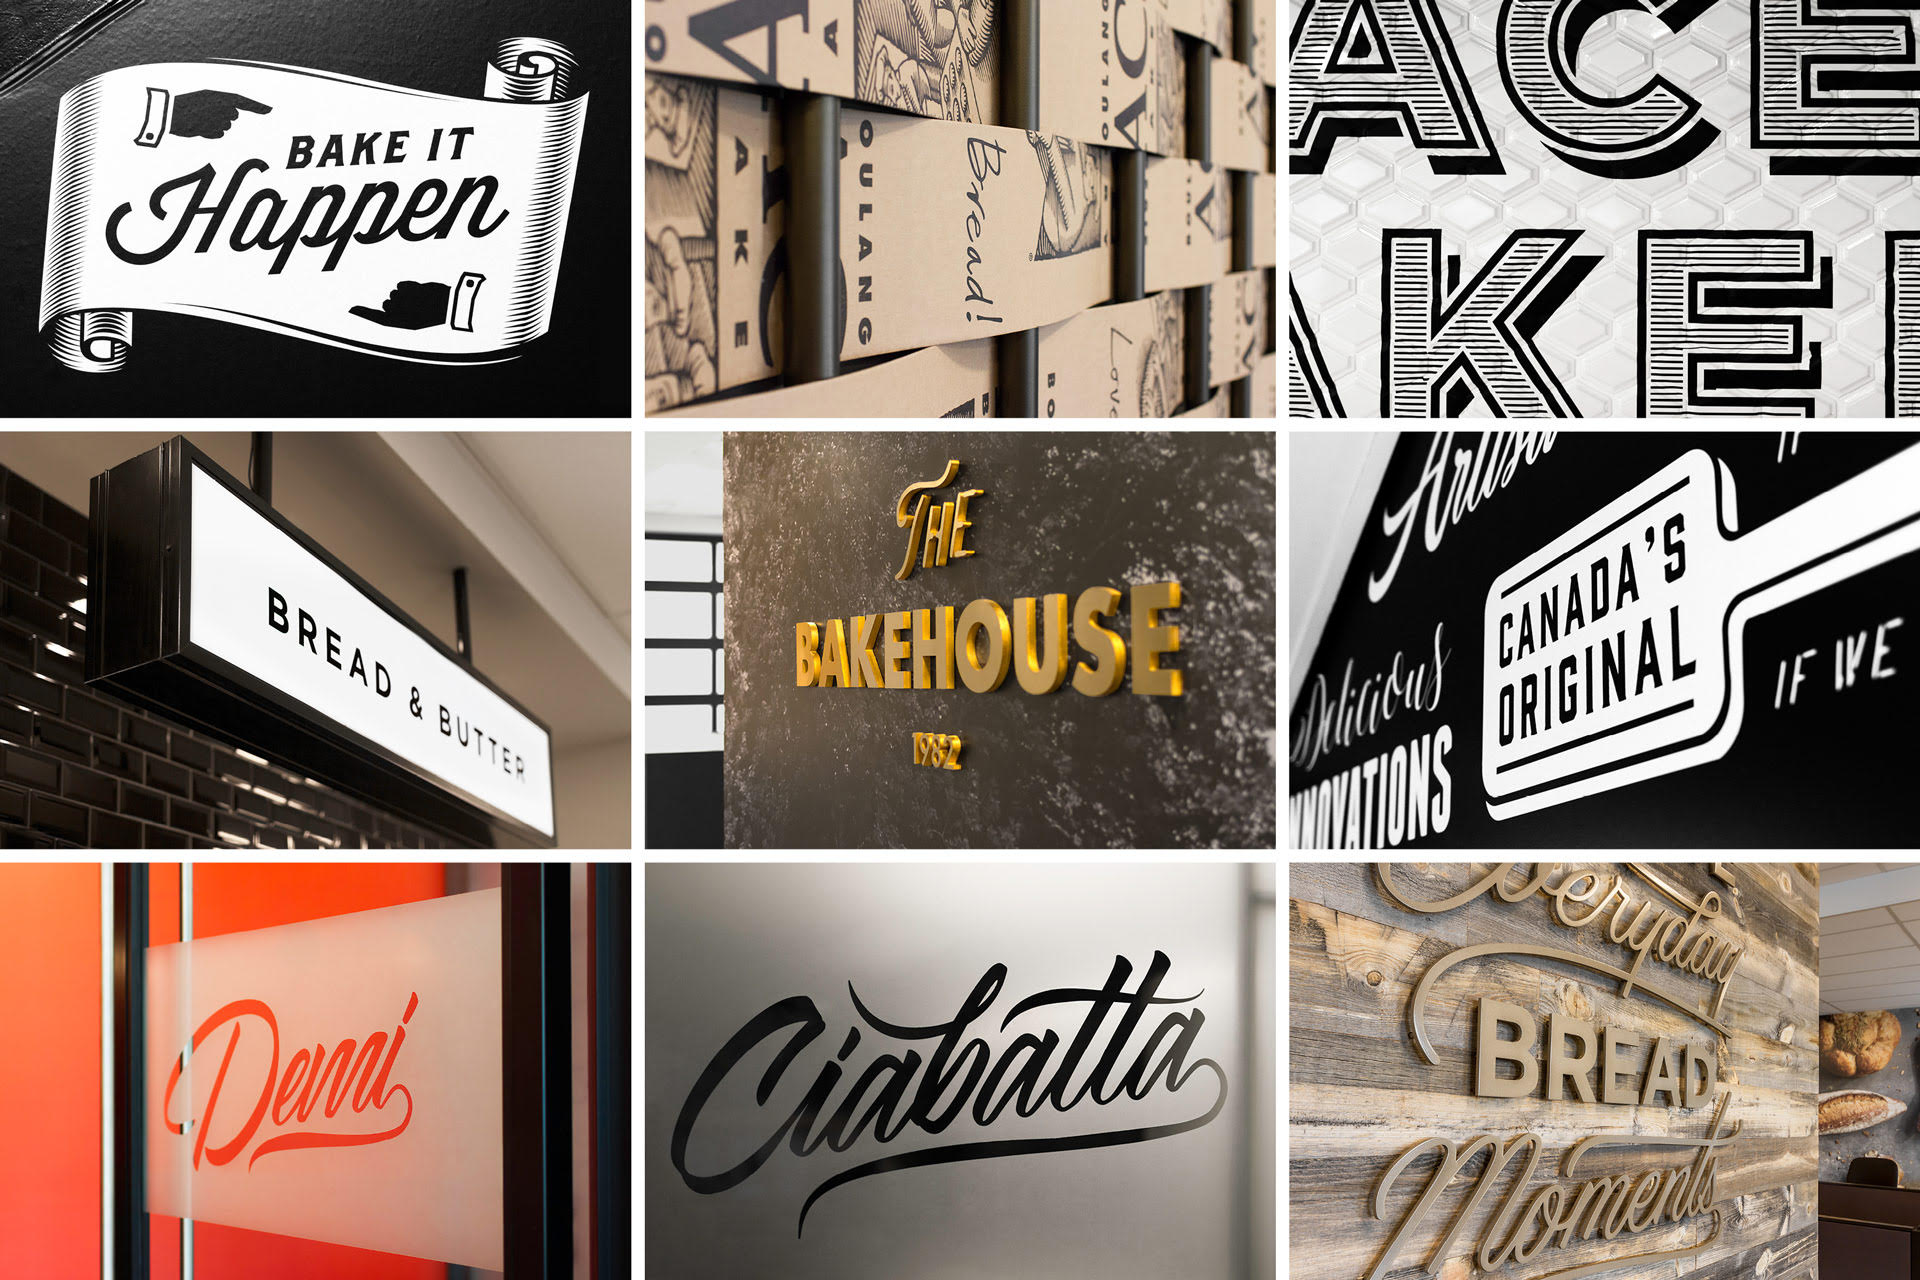 examples of branded environments by jacknife